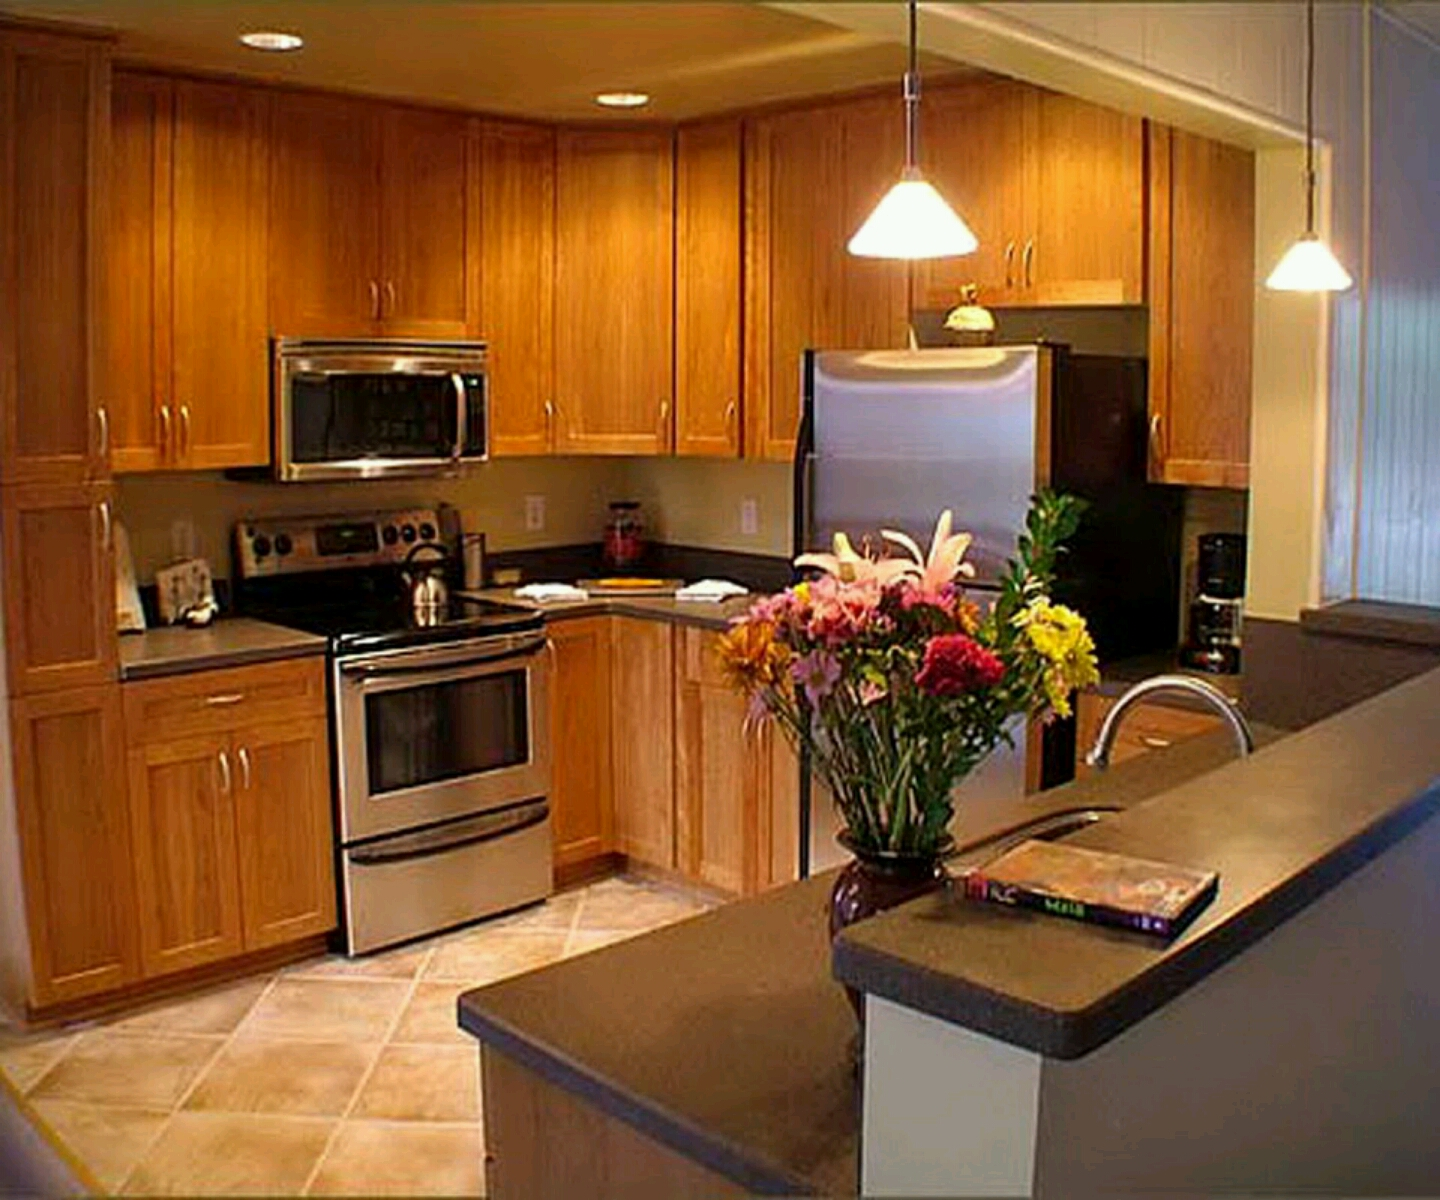 Modern wooden kitchen cabinets designs furniture gallery Wood kitchen design gallery